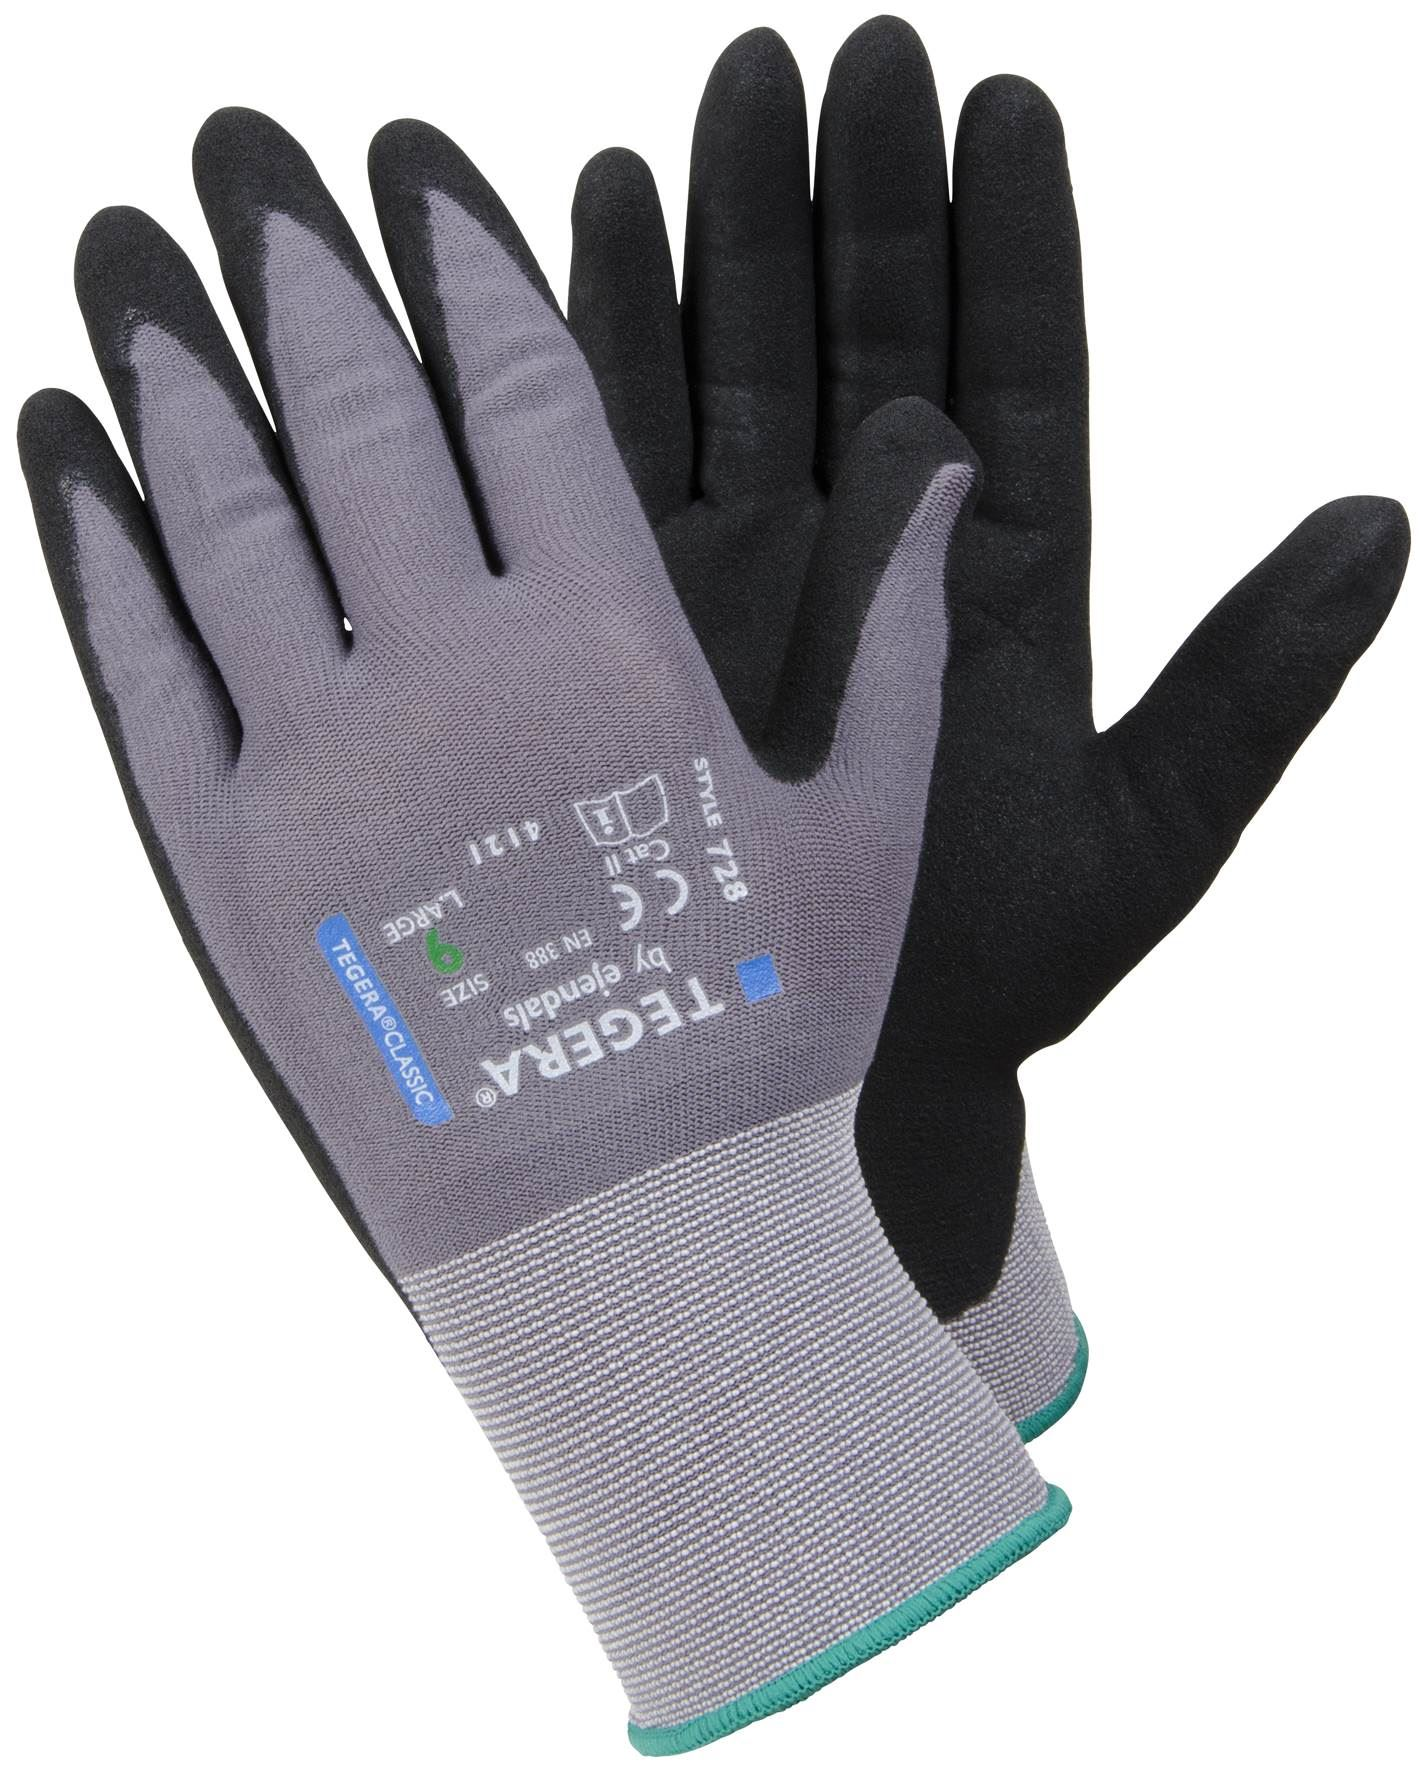 12x par GUANTES Pairs gloves Black PU Safety Work Glove Builders Protect  S//M //L